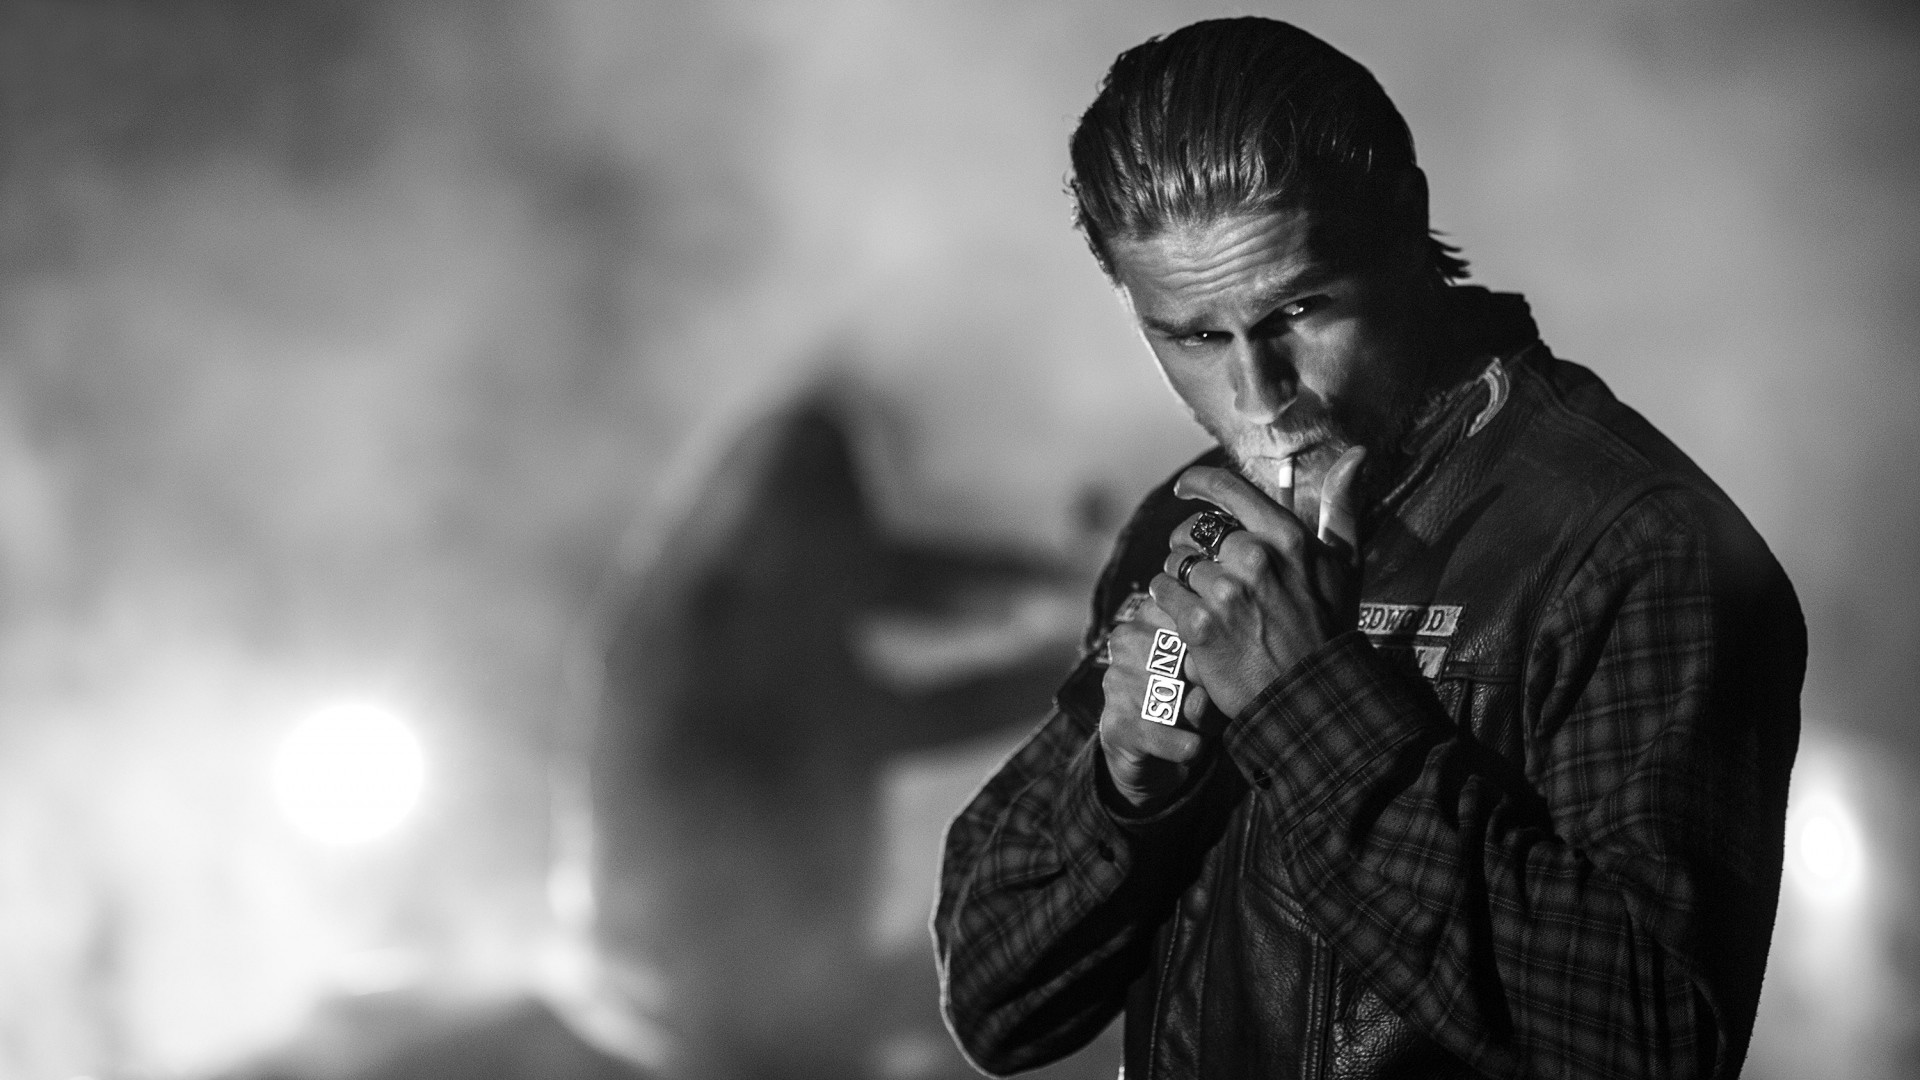 1920x1080  Wallpaper sons of anarchy, jax teller, charlie hunnam